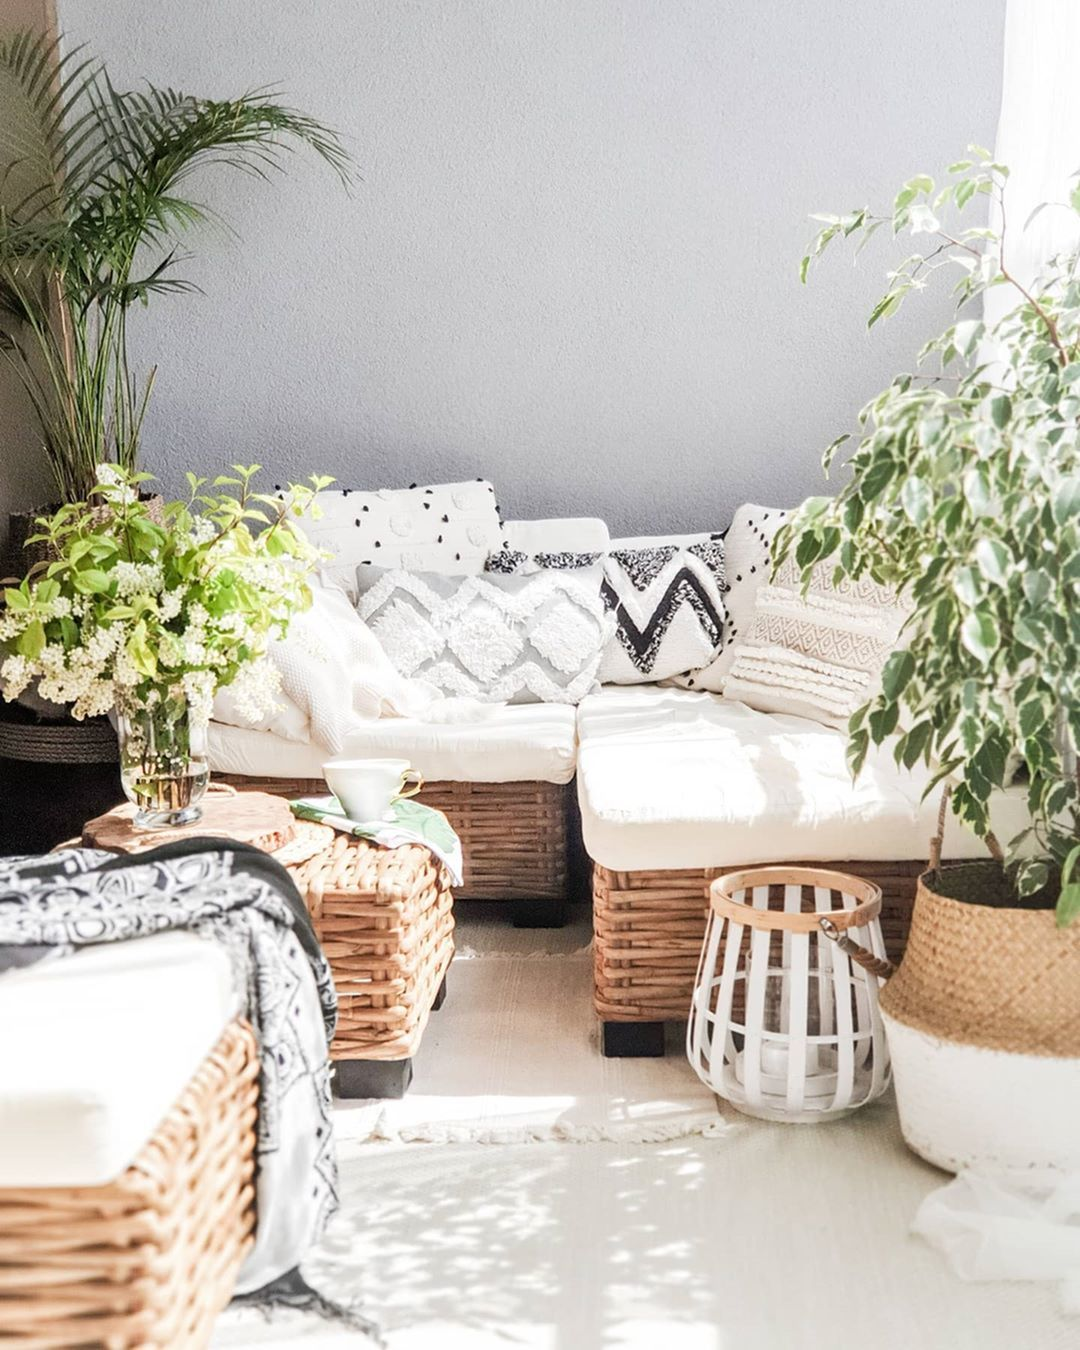 How to Transform Your Patio into A Desert Oasis-image